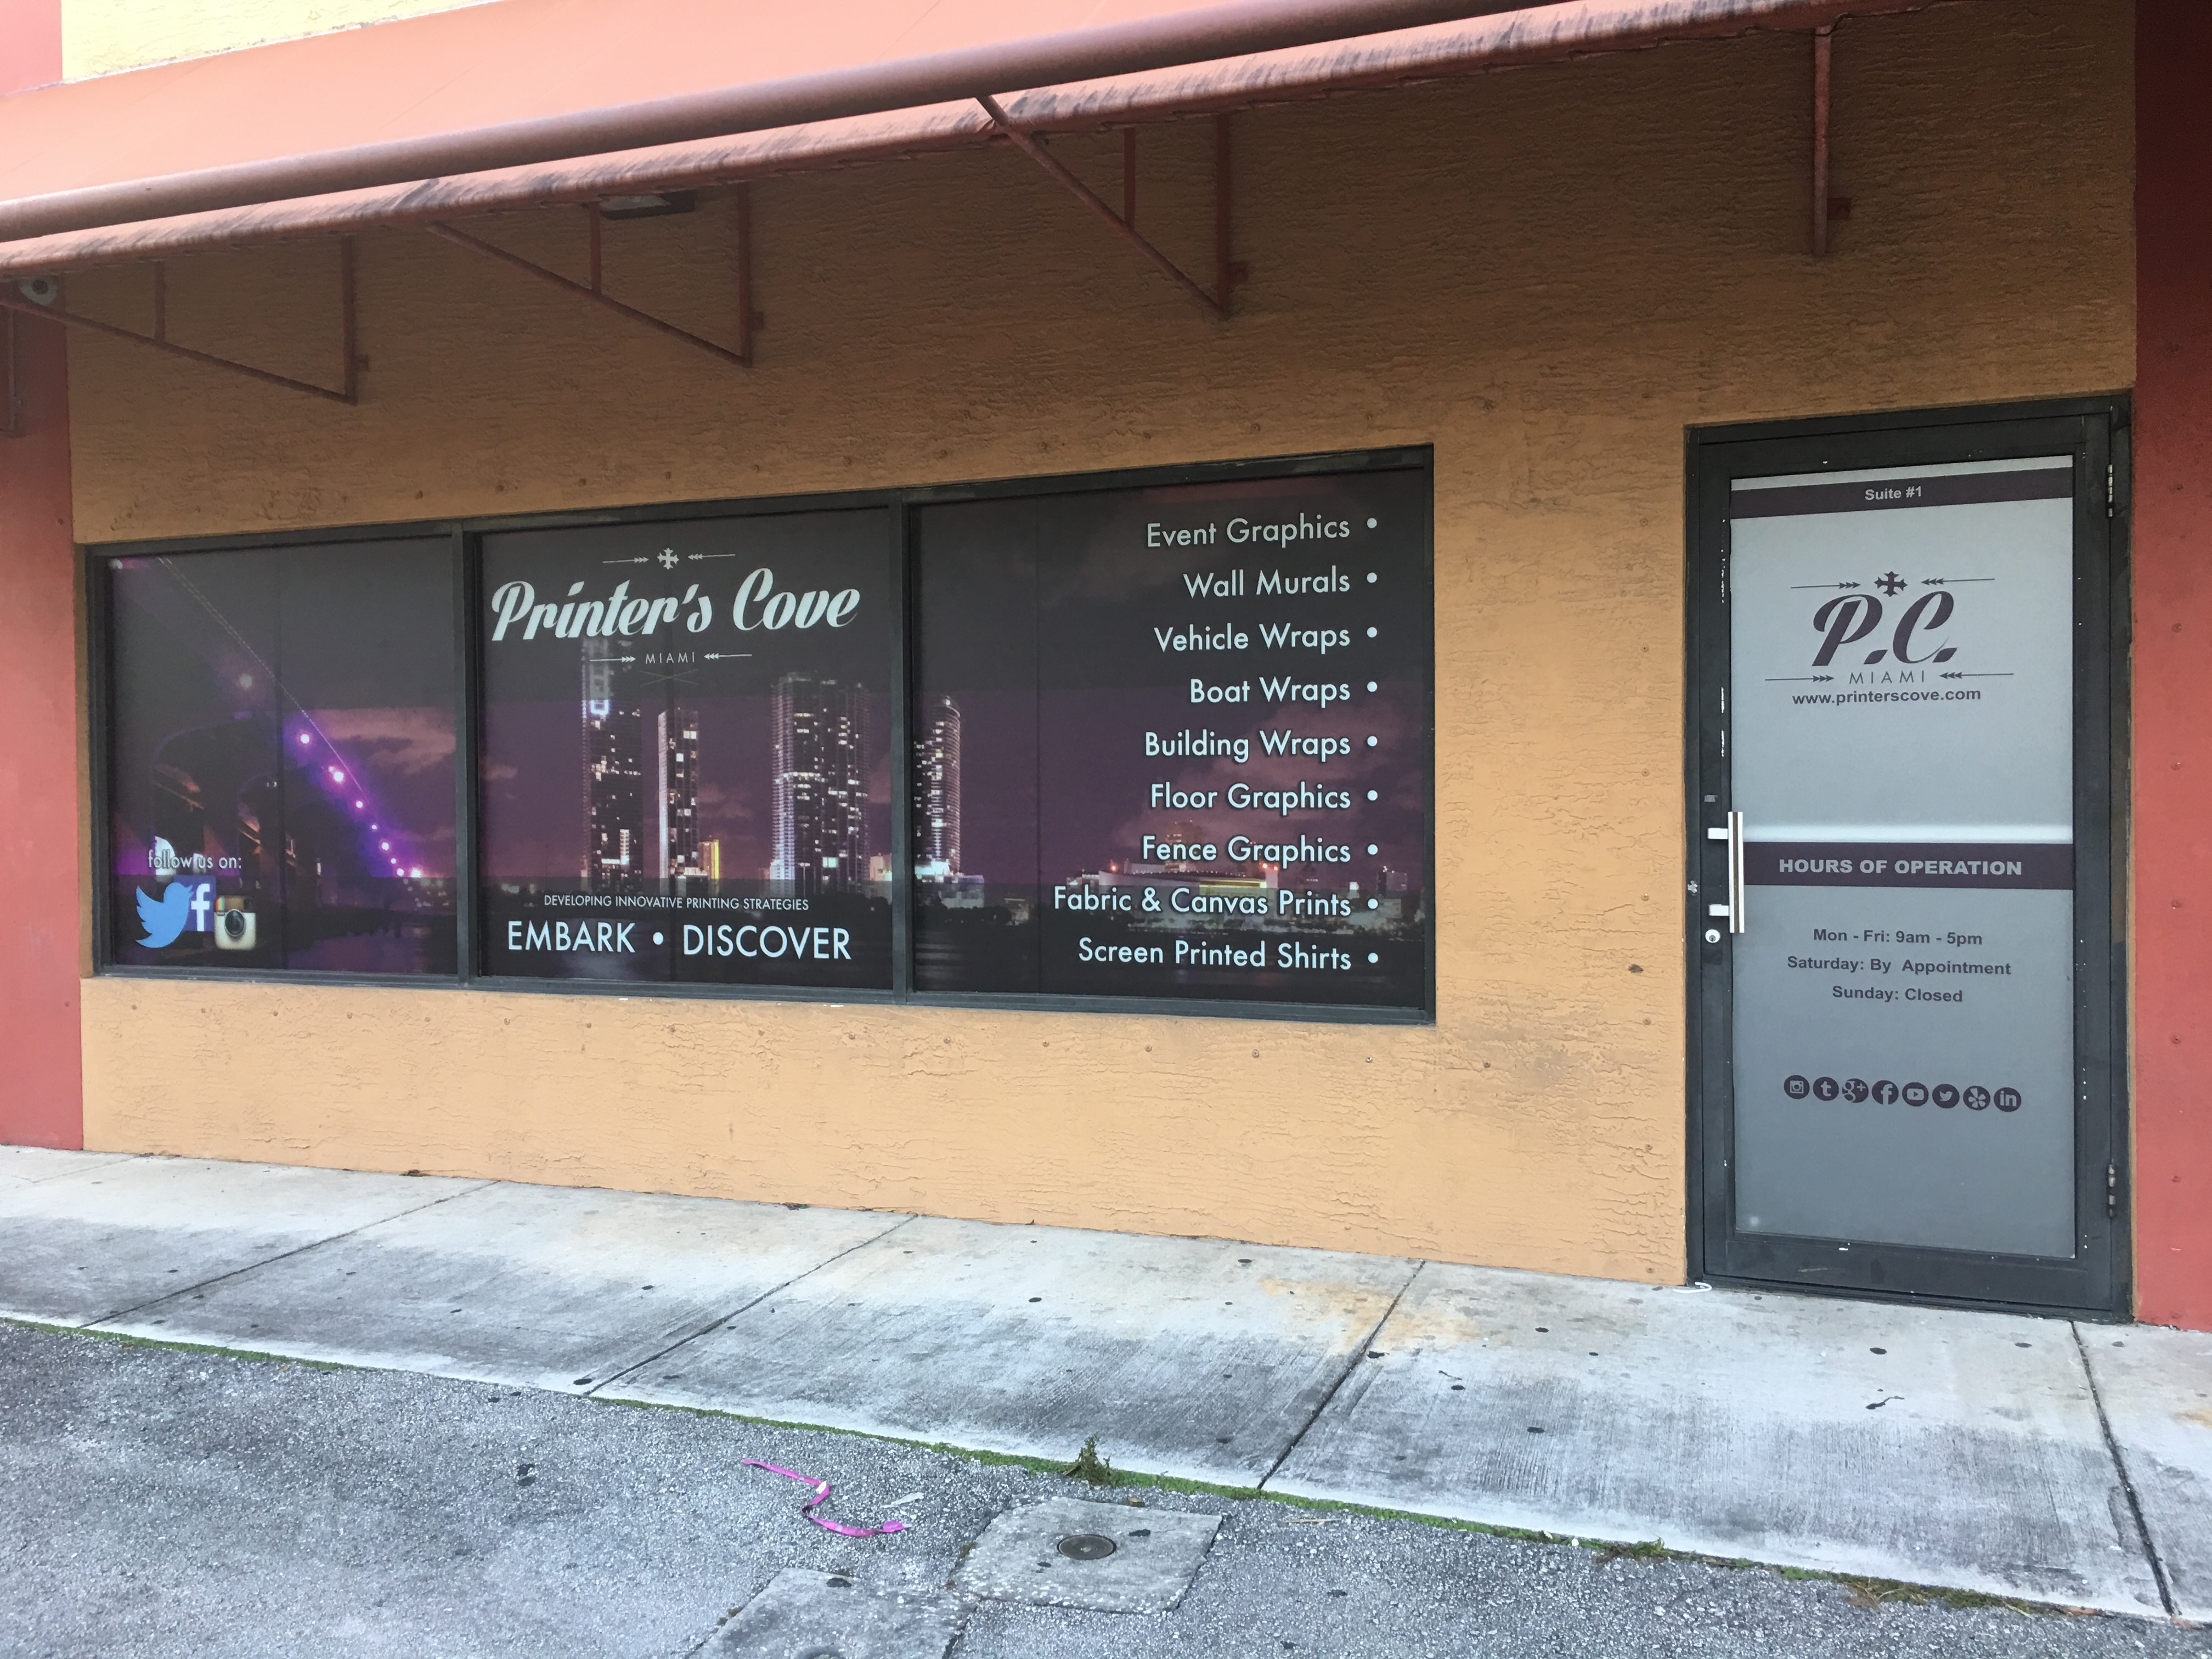 Printers Cove Window Graphics